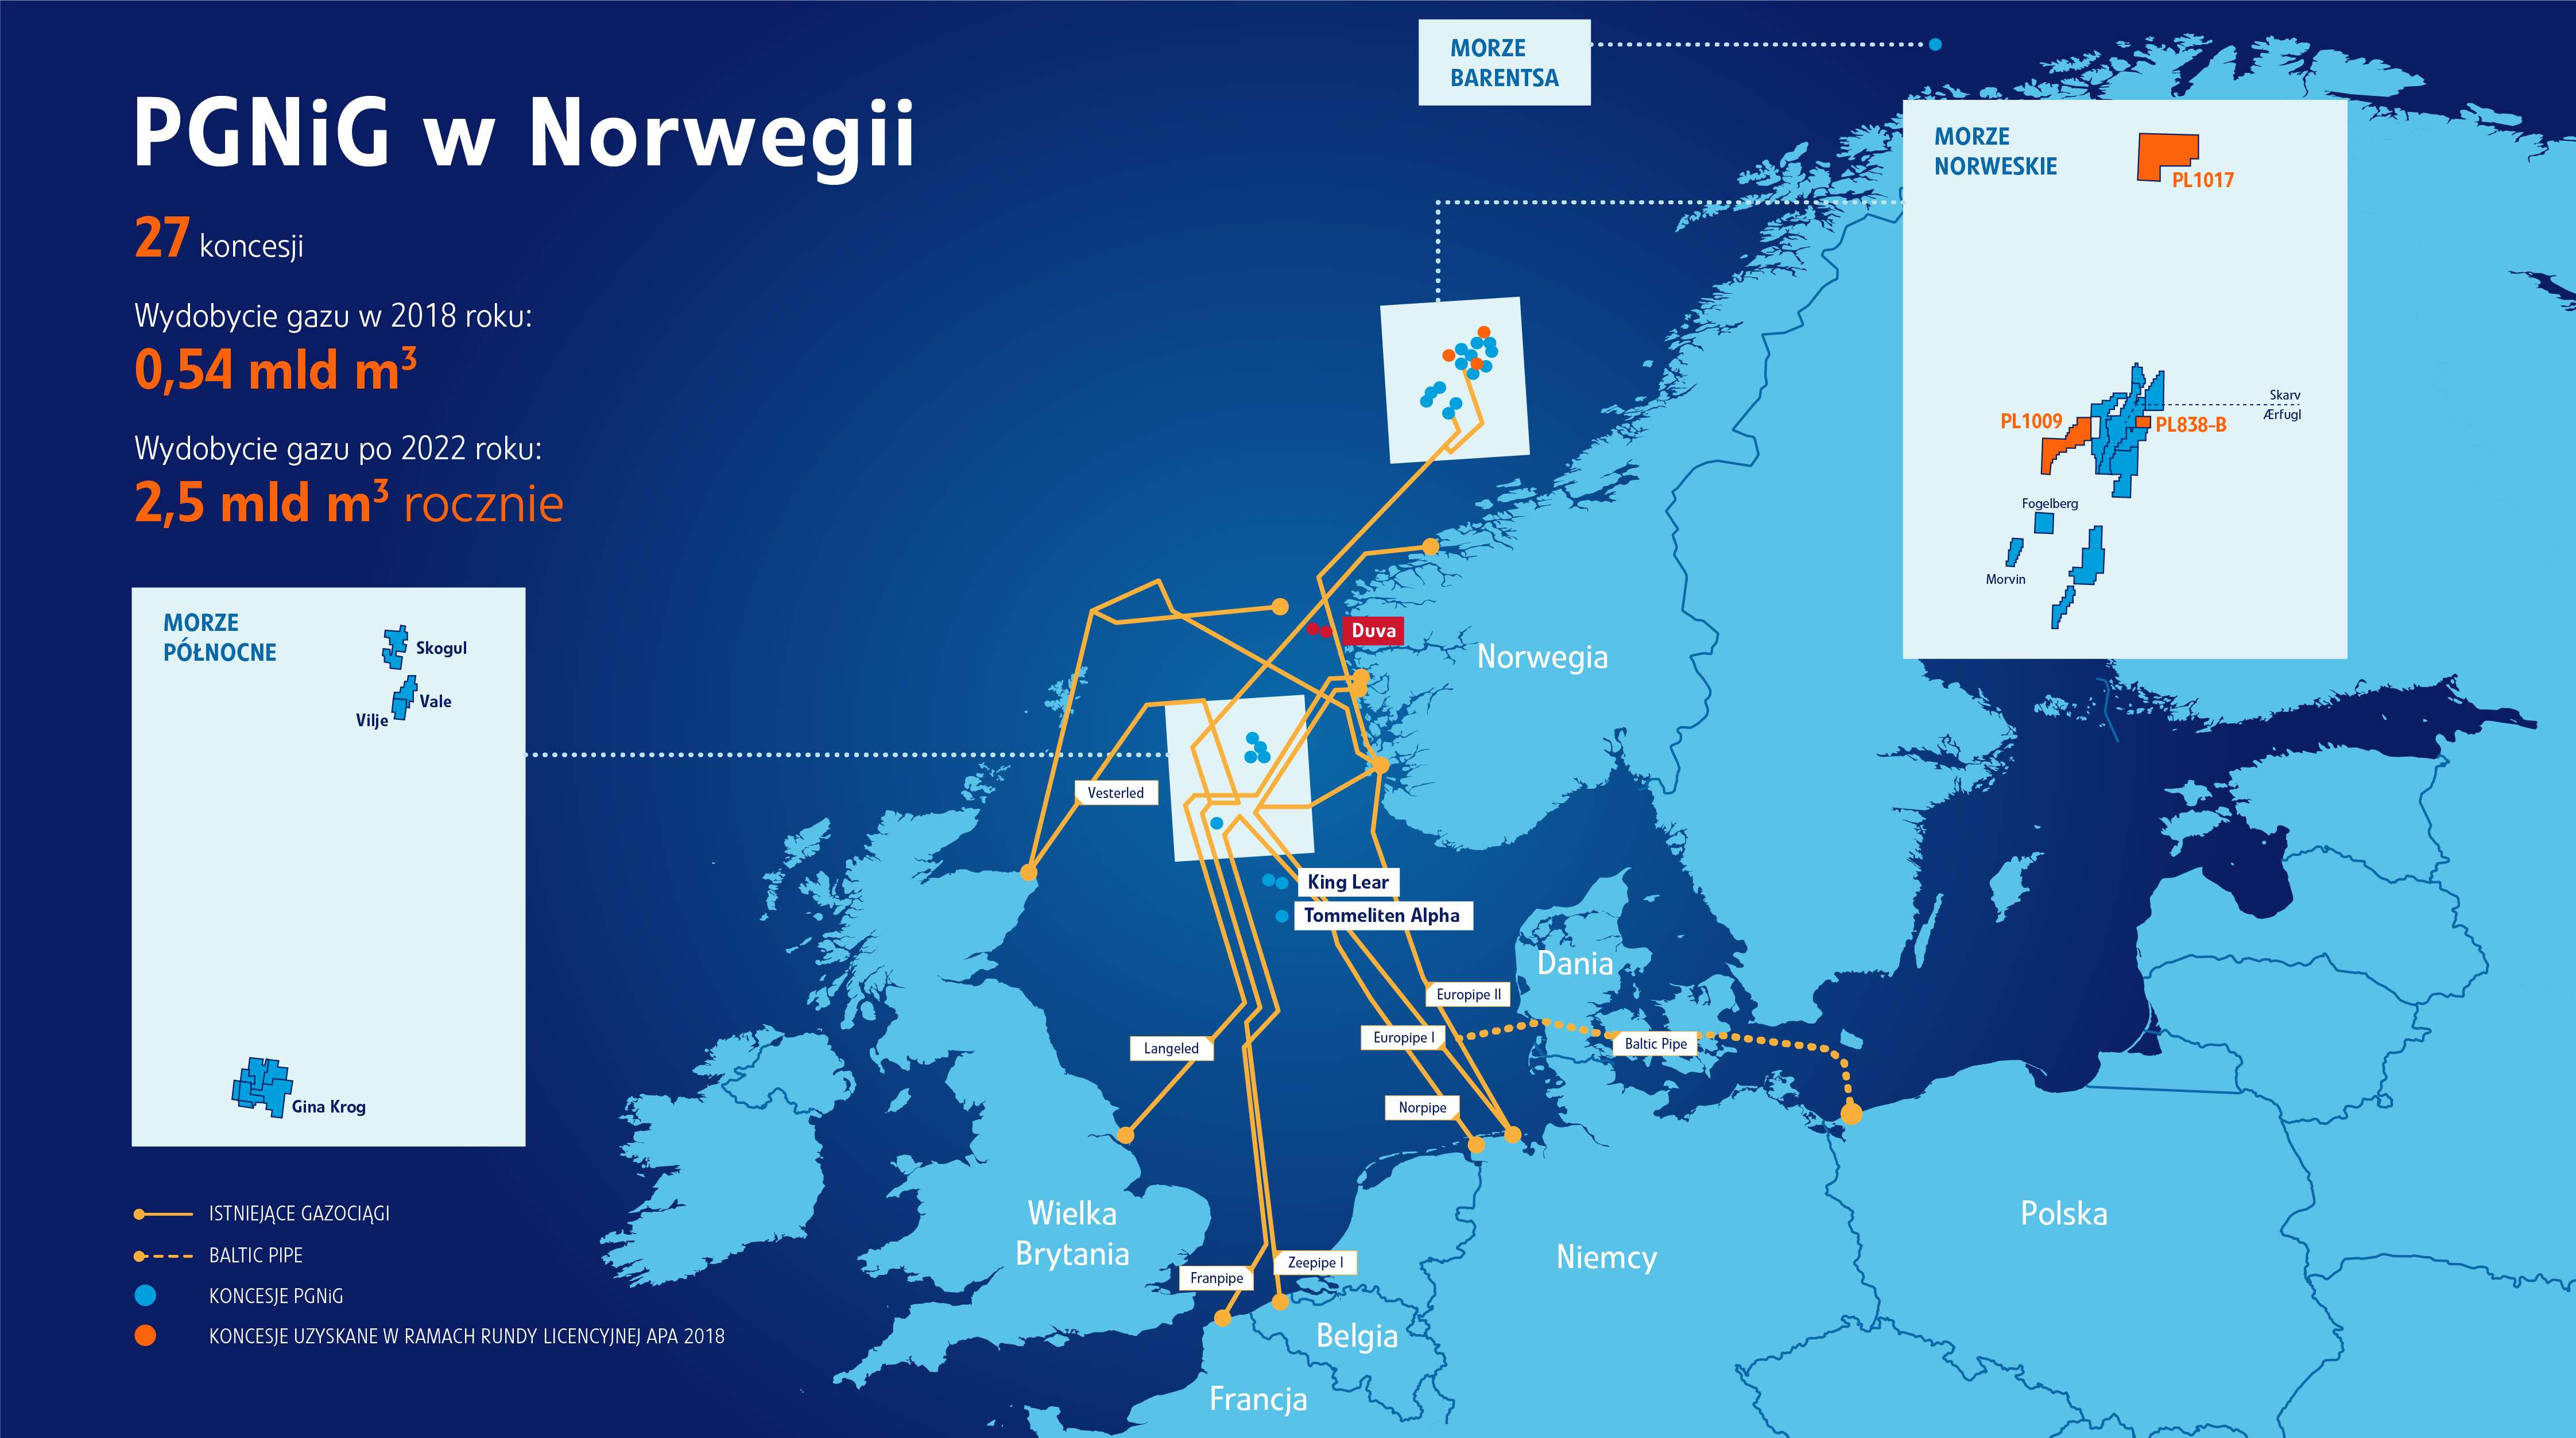 PGNiG increases its share in the Duva field in Norway